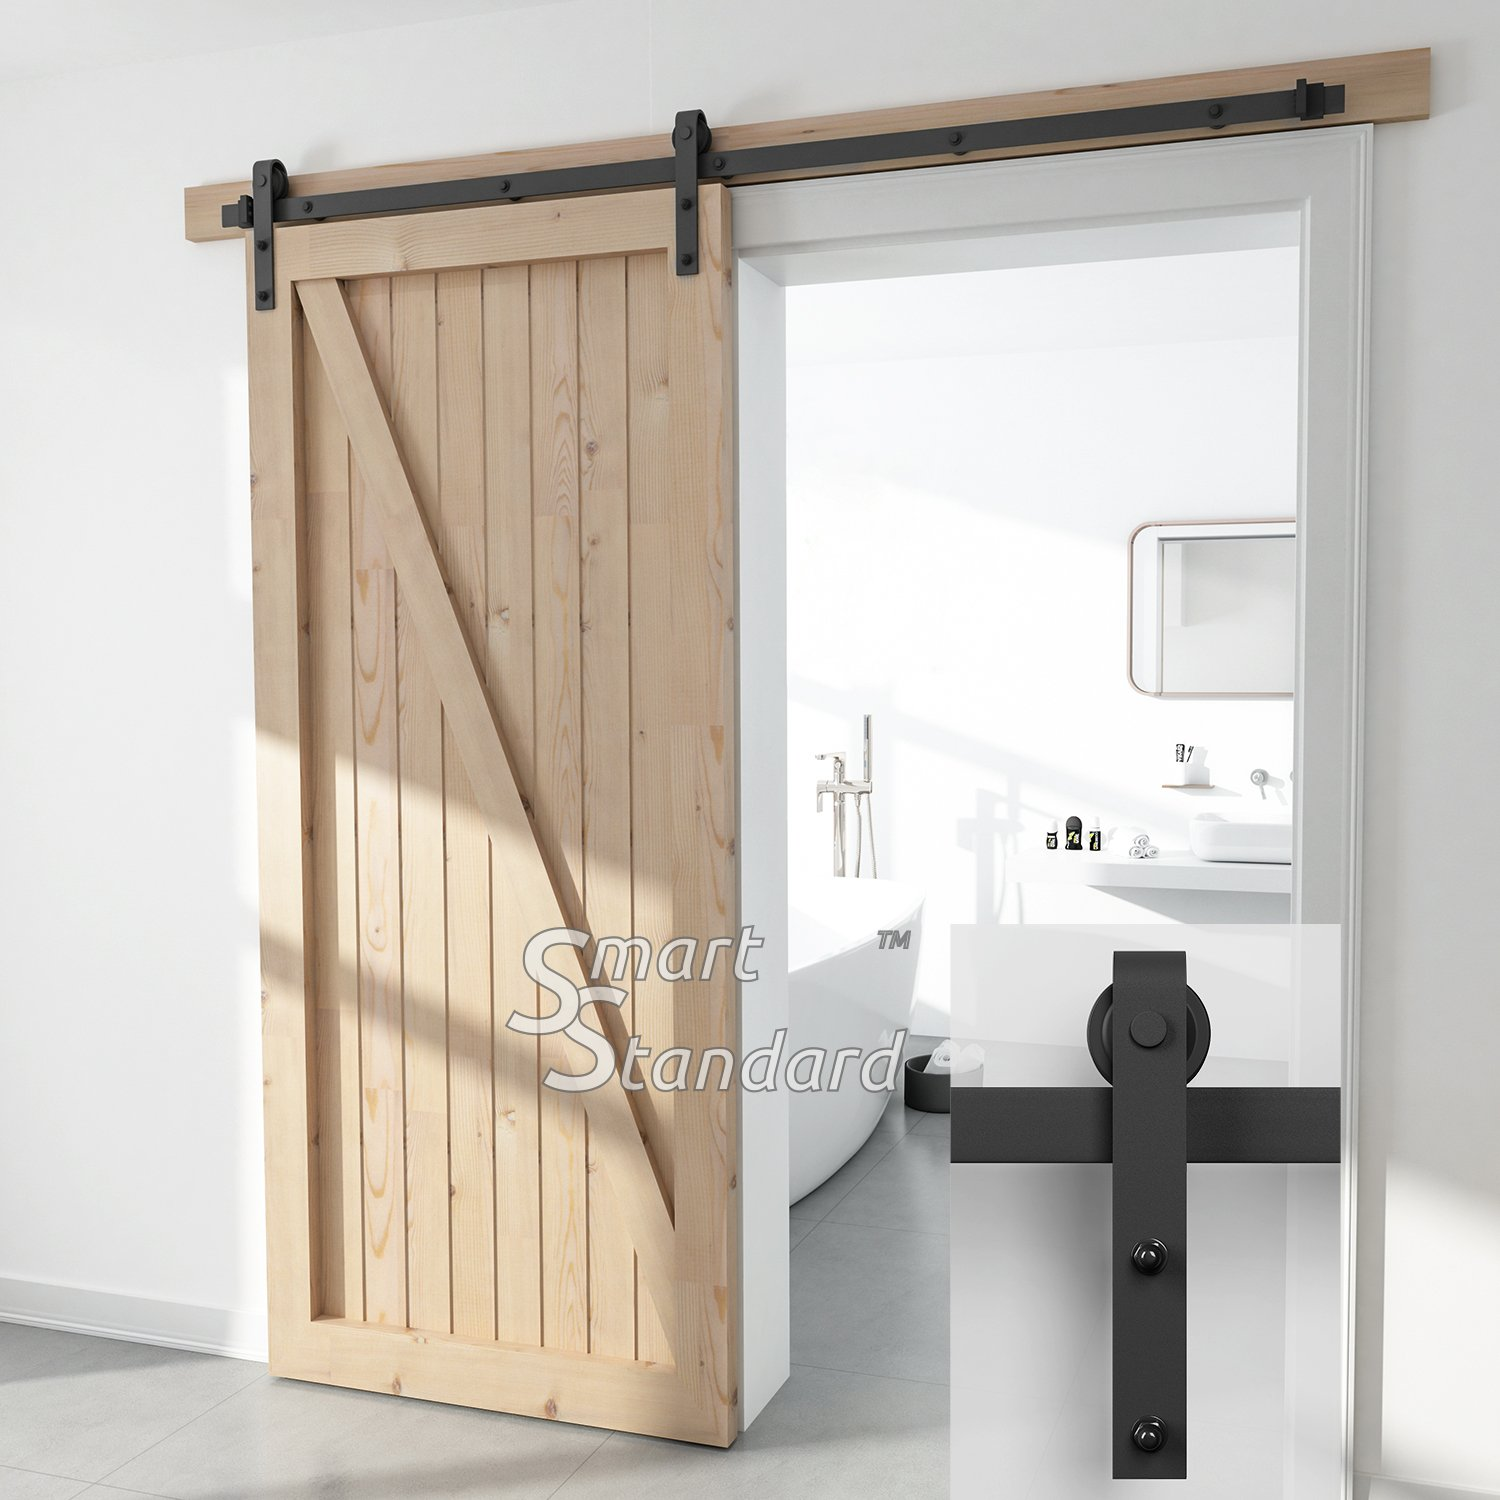 Superieur ... Hanger To Install More Doors, Please Buy Our J Shape Hanger( ASIN:  B01FL9LFL2) ,This J Shape Hanger Is Compatible With Our J Shape Sliding  Door Hardware ...